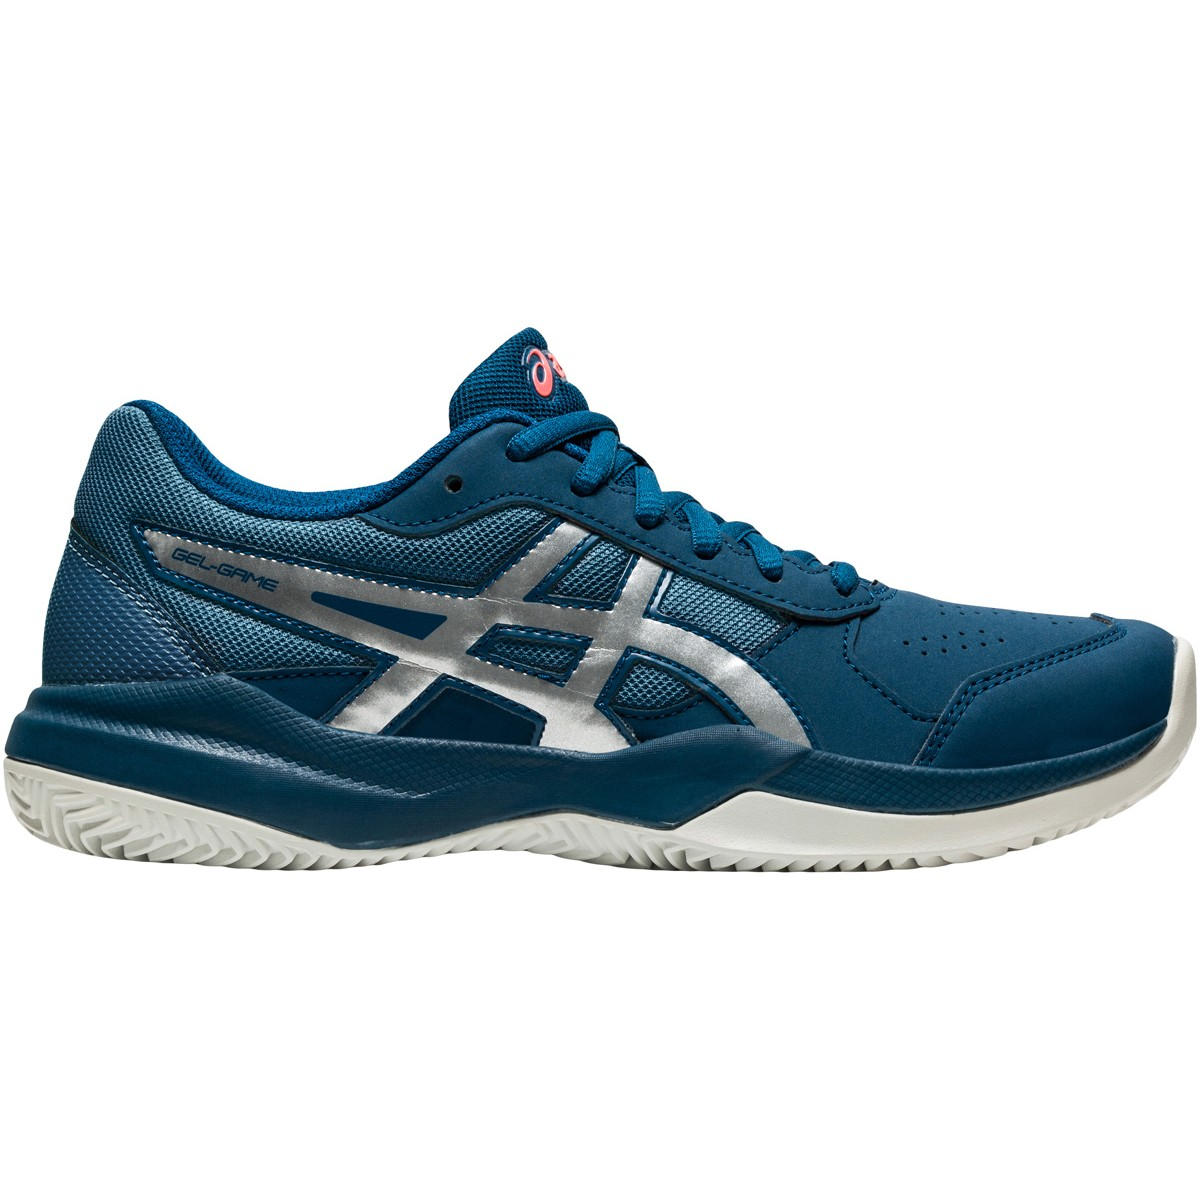 JUNIOR ASICS GEL GAME 7 GS CLAY COURT SHOES